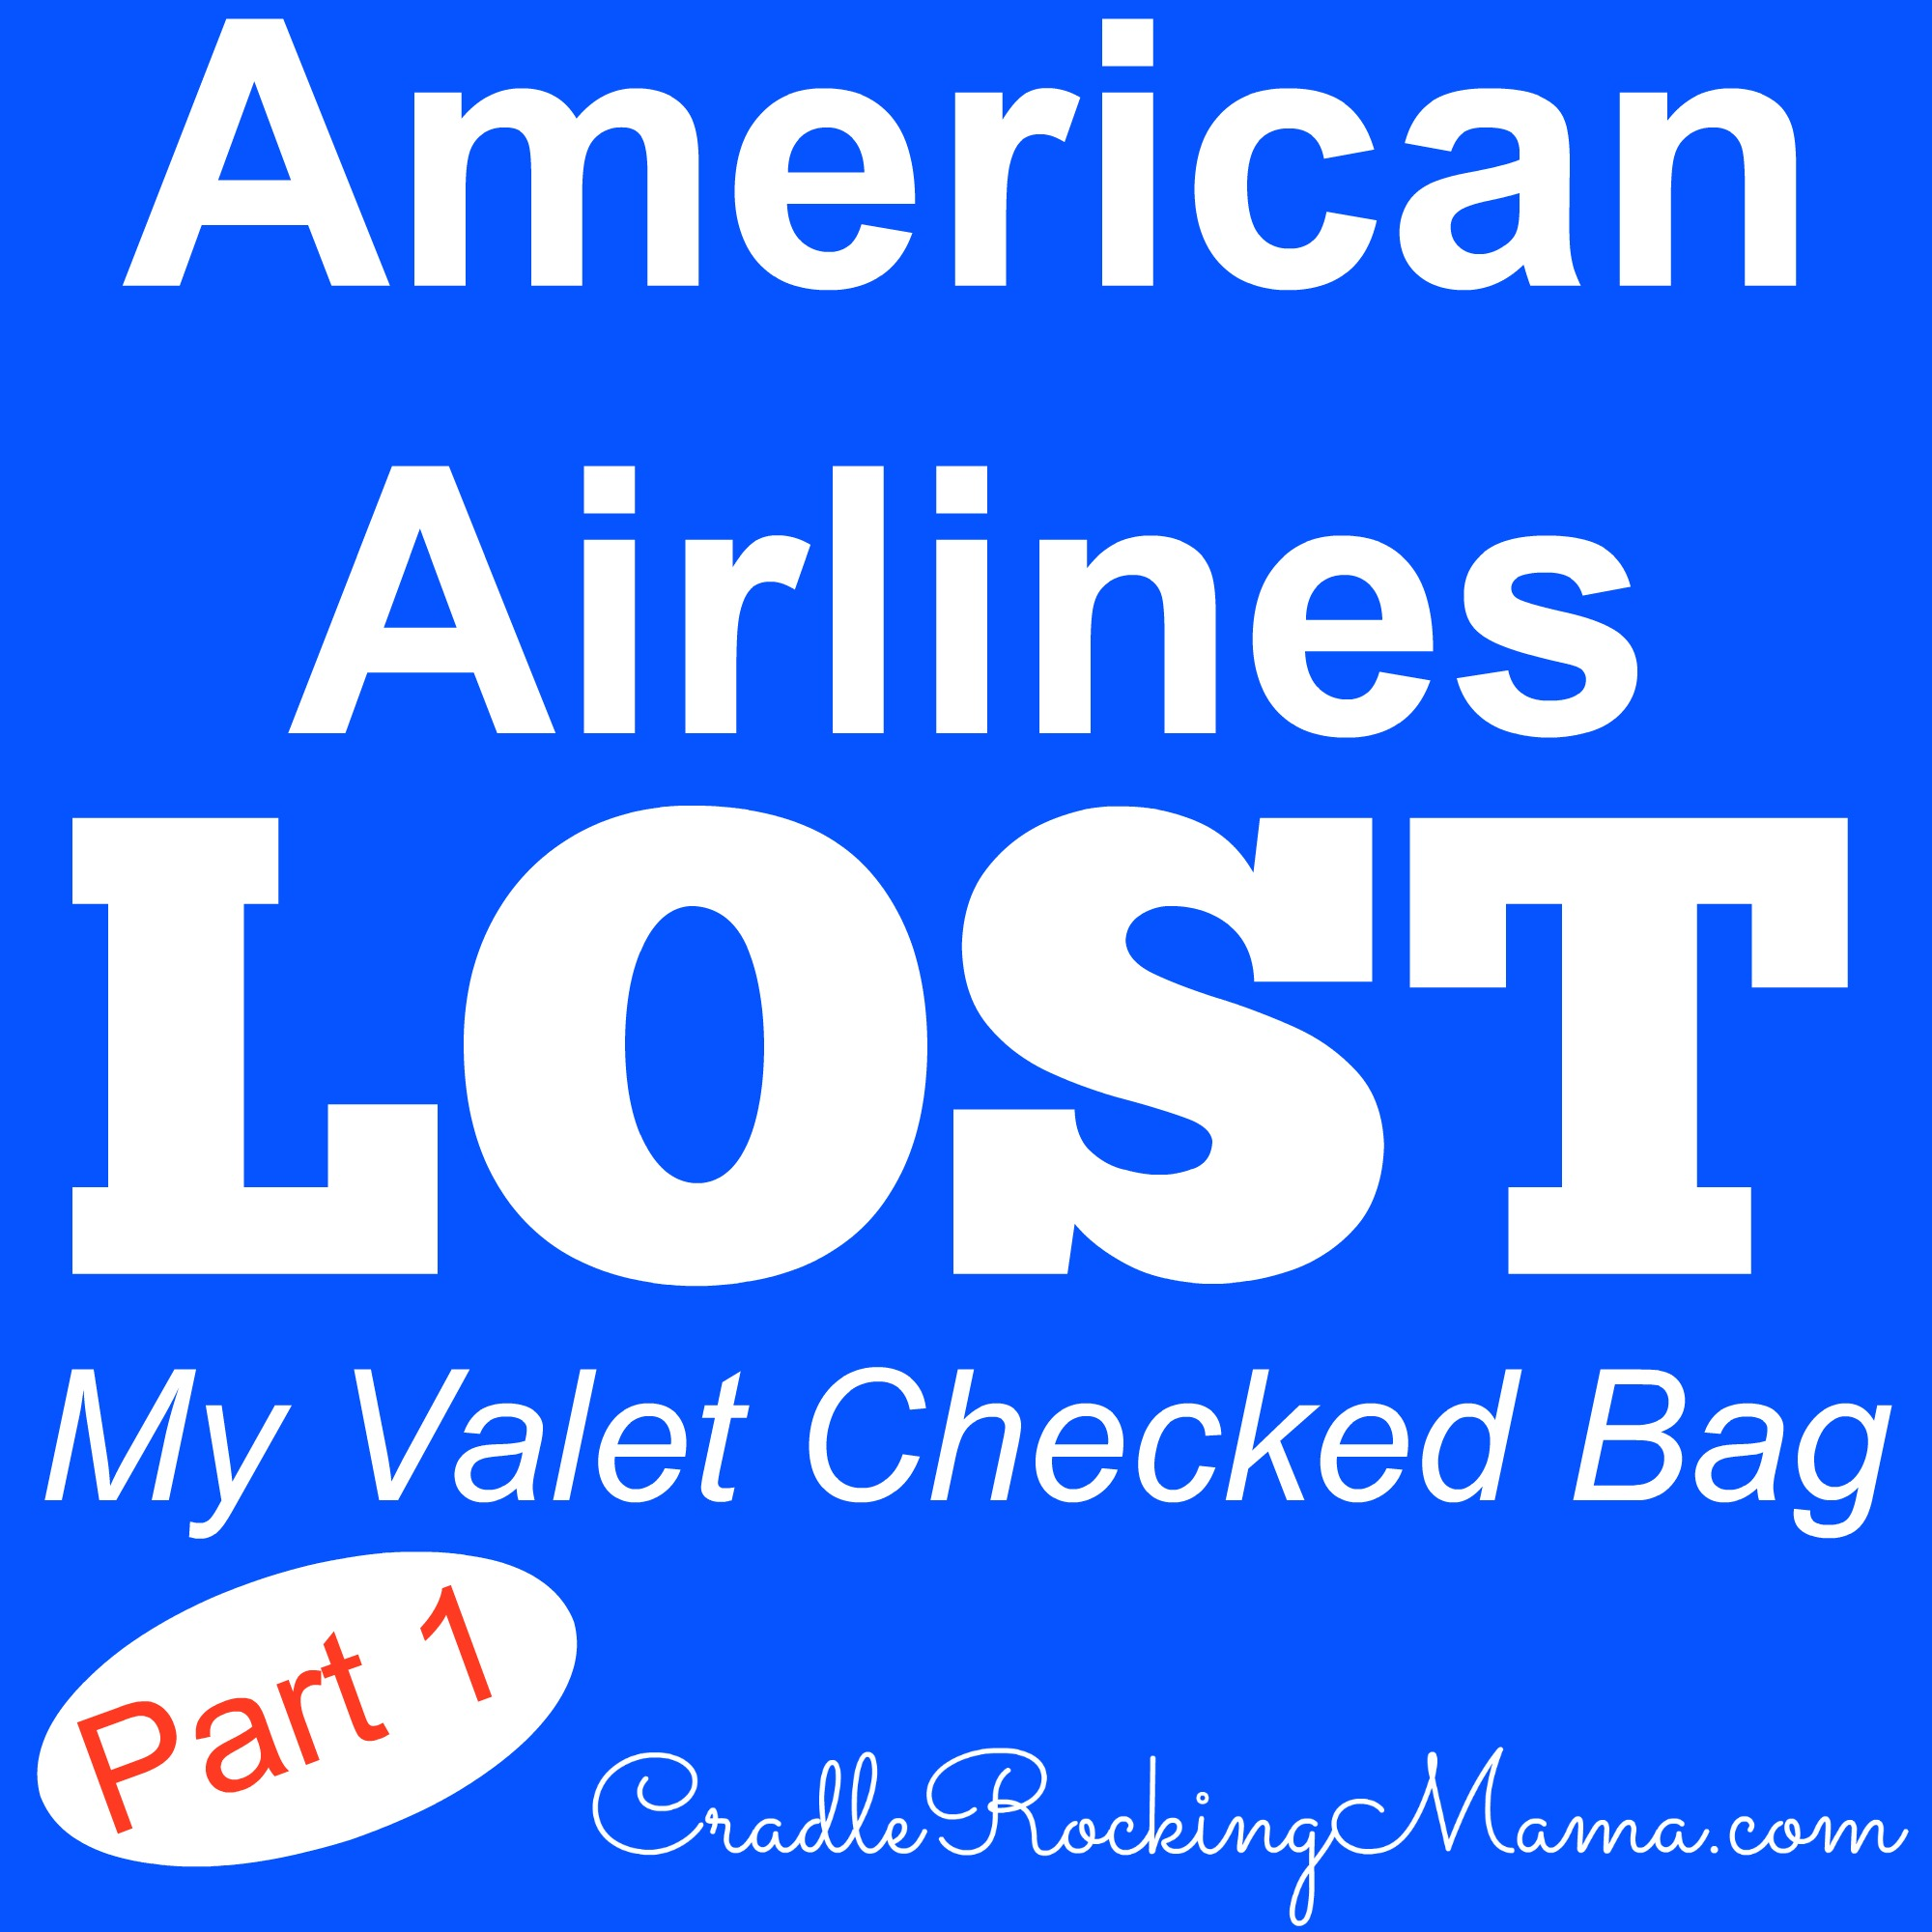 American Airlines Lost My Valet Checked Bag Part 1